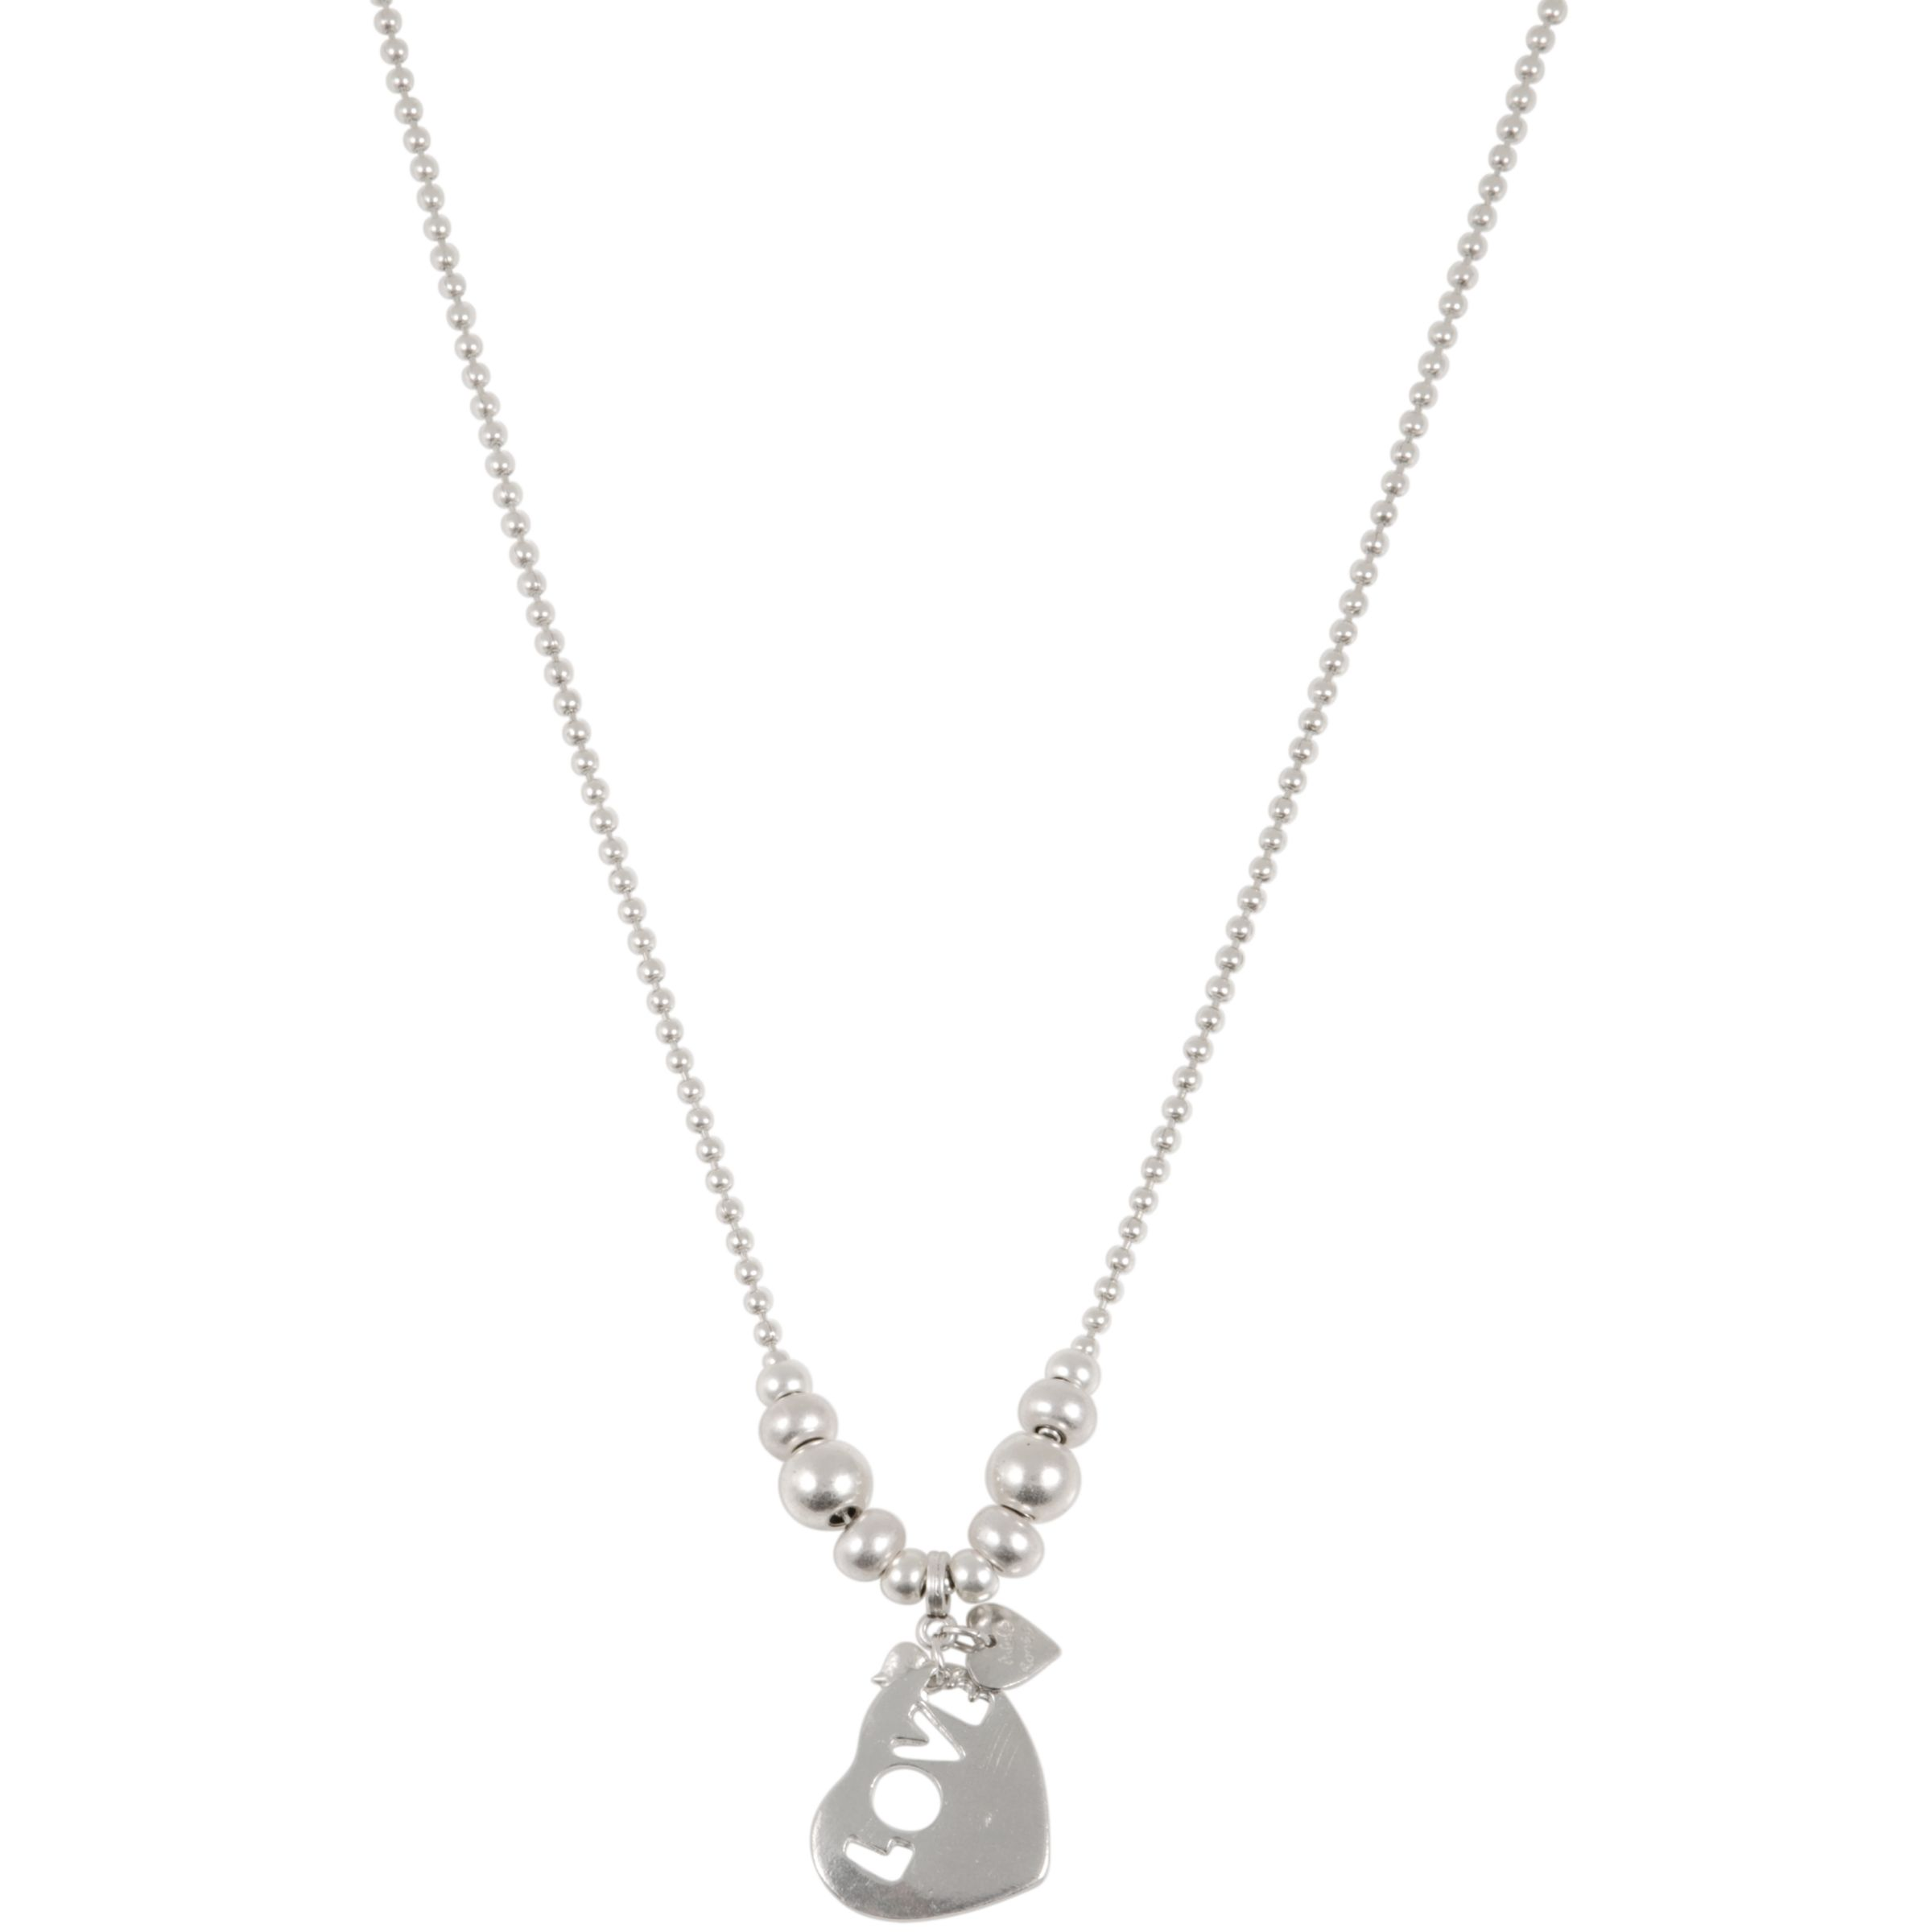 Adele Marie Silver Balls and Love Heart Charm Necklace